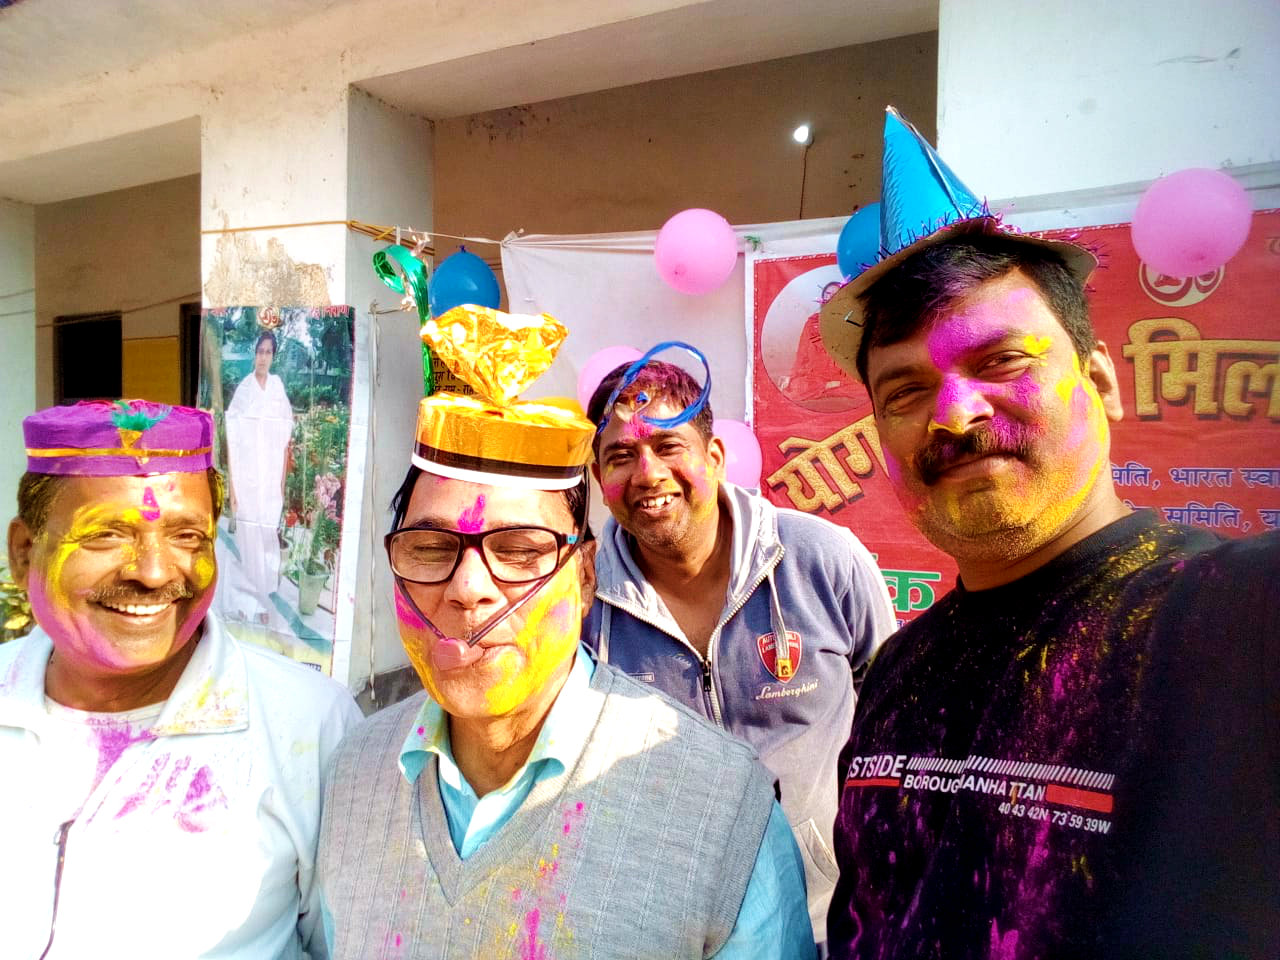 Dr.Madhepuri, Dr.N.K.Nirala , Dakbabu Rajesh Kumar and Ritesh Kumar enjoying Holi Milan organised by Patanjali Yog Samiti at Rasbihari School Campus.